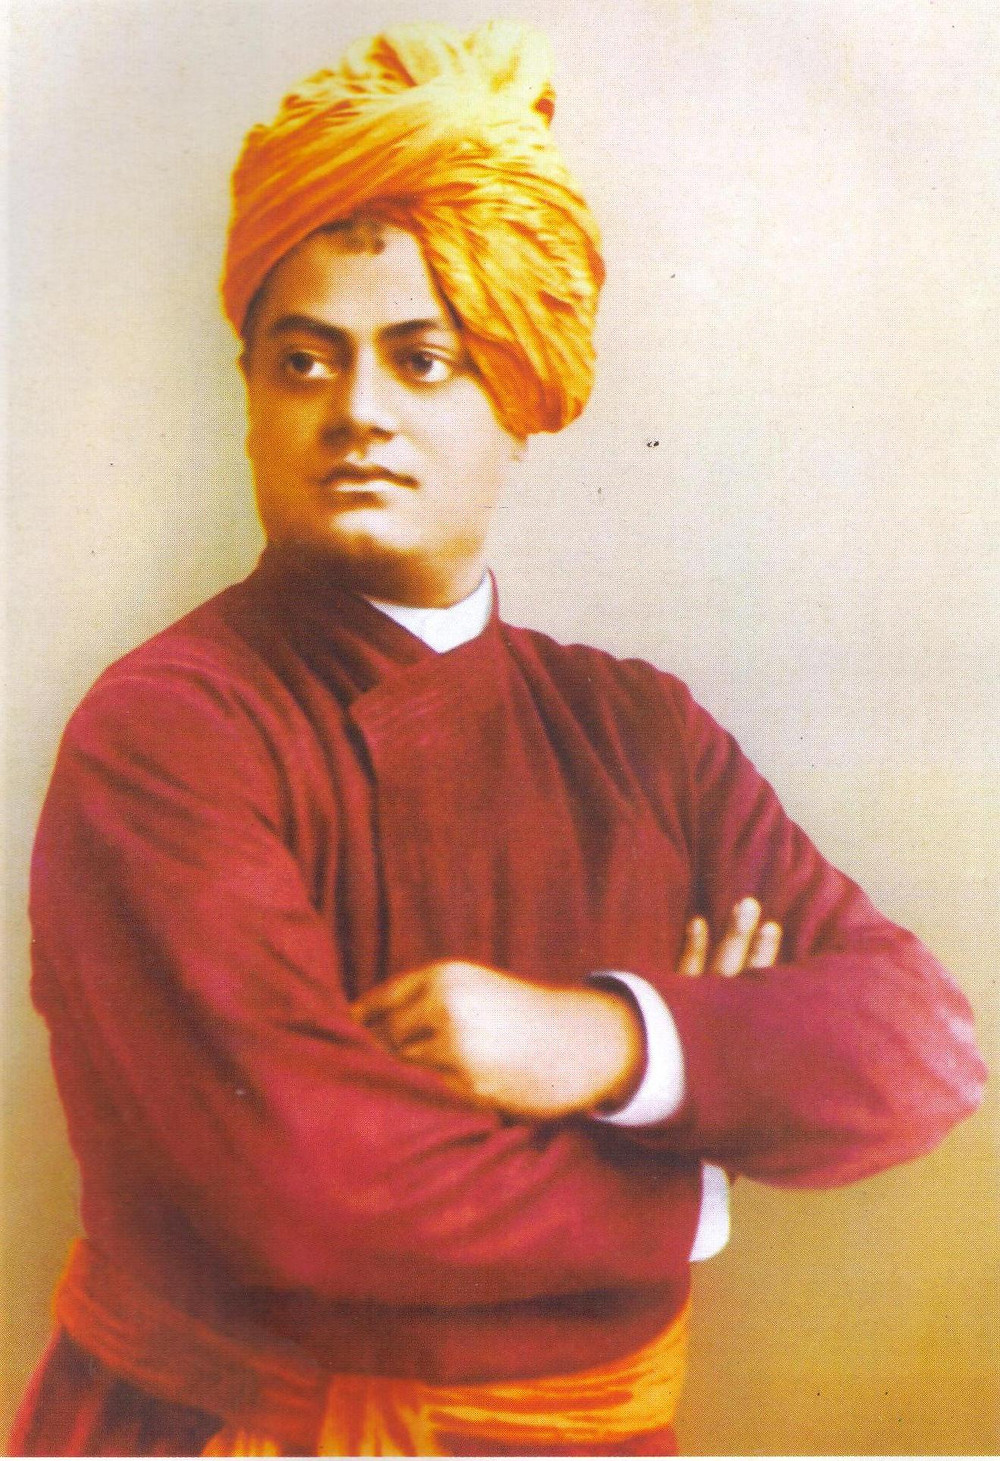 Swami Vivekananda was an Indian monk who introduced the philosophy of Yoga and Vedanta to the Western world. His lectures, writings and teachings are the major source of inspiration for most of the youth study circles, organizations and service projects.